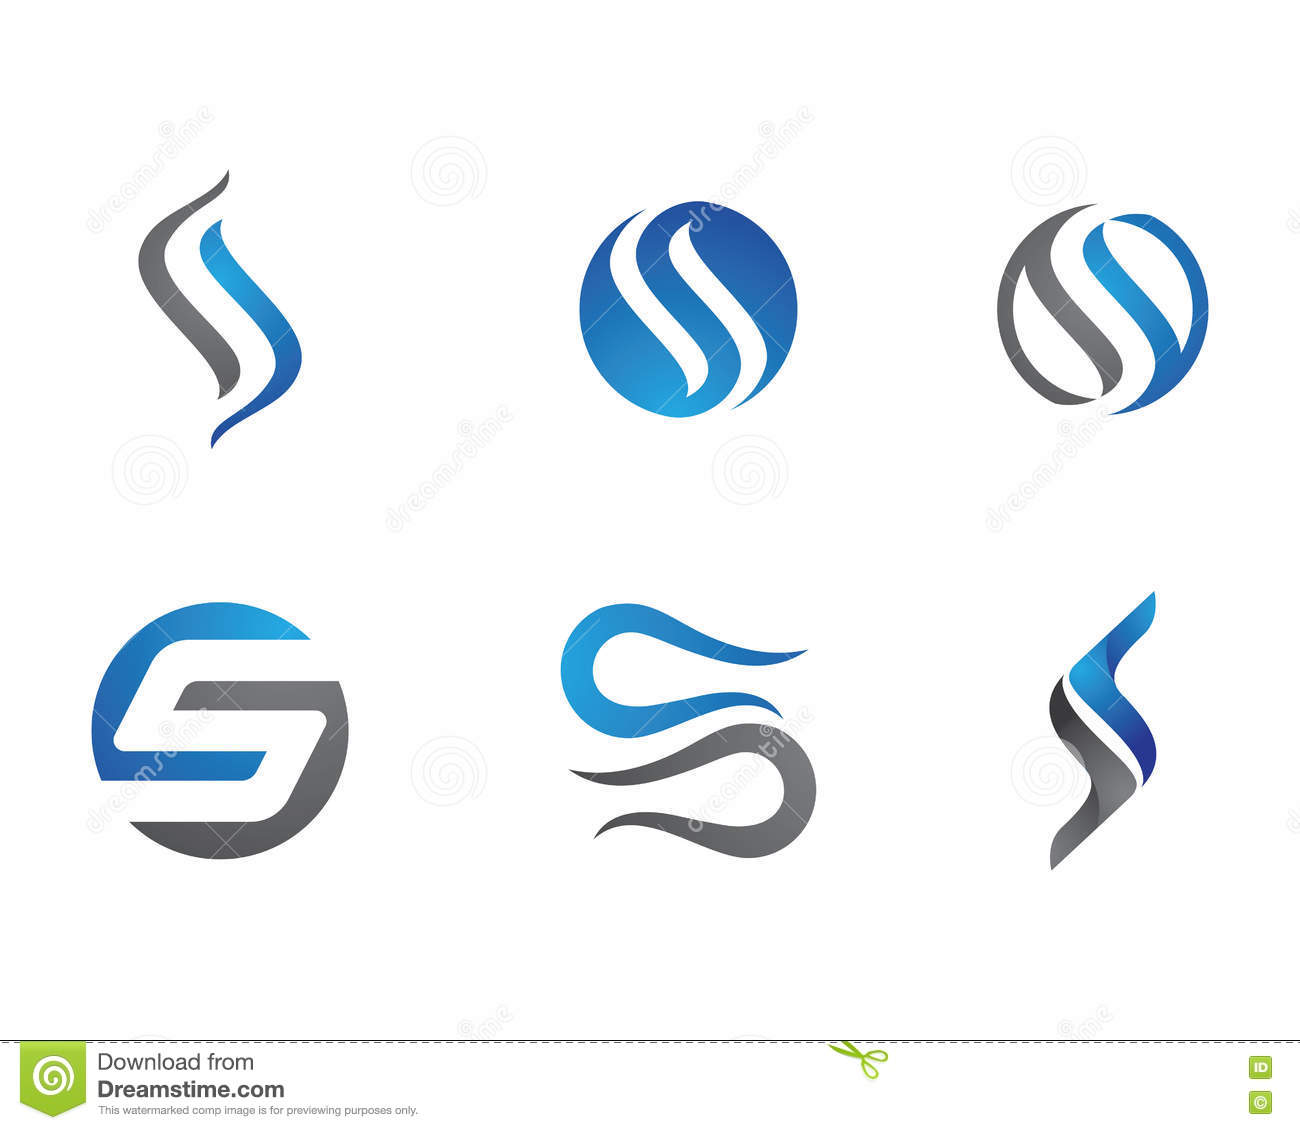 S Symbol Images S Letter and S ...